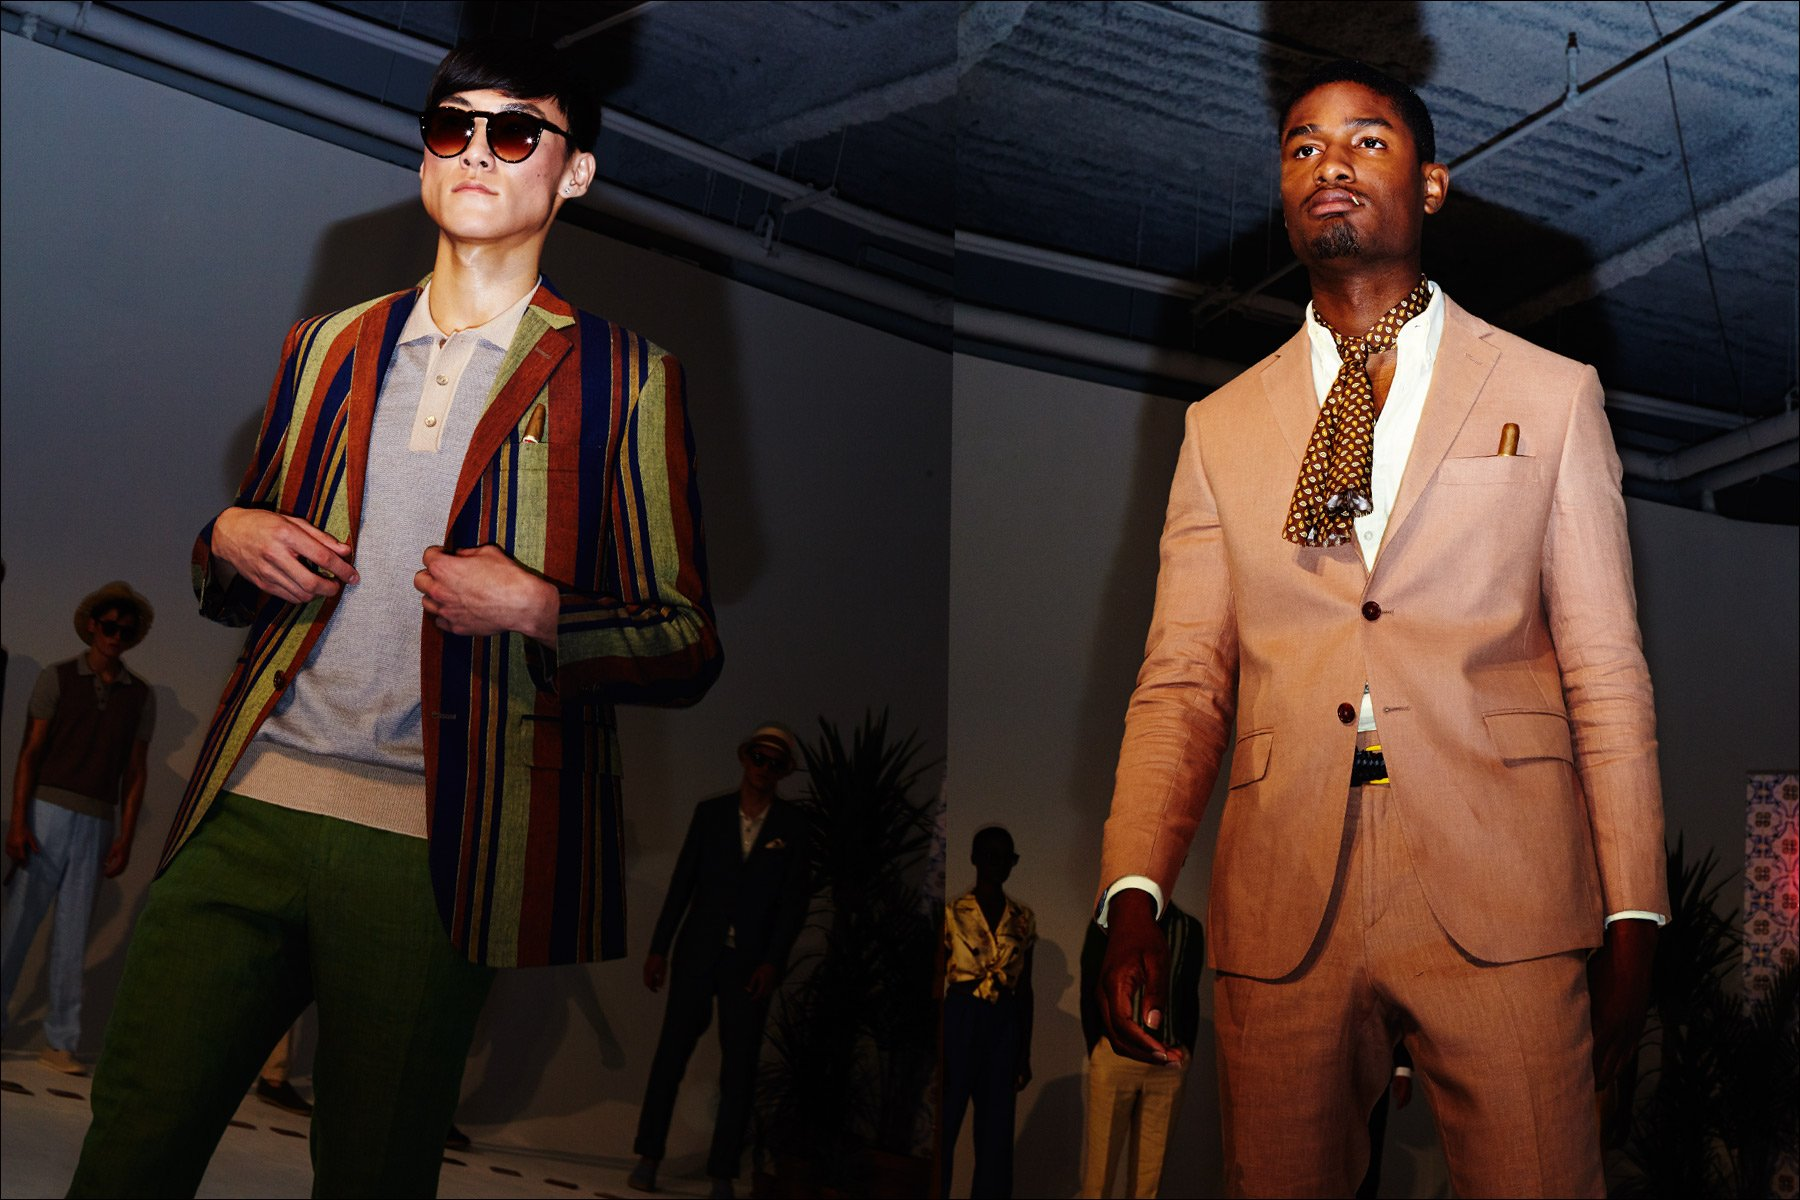 Spring 2018 Cuban inspired menswear looks on the runway by David Hart. Photography for Ponyboy magazine NY by Alexander Thompson.